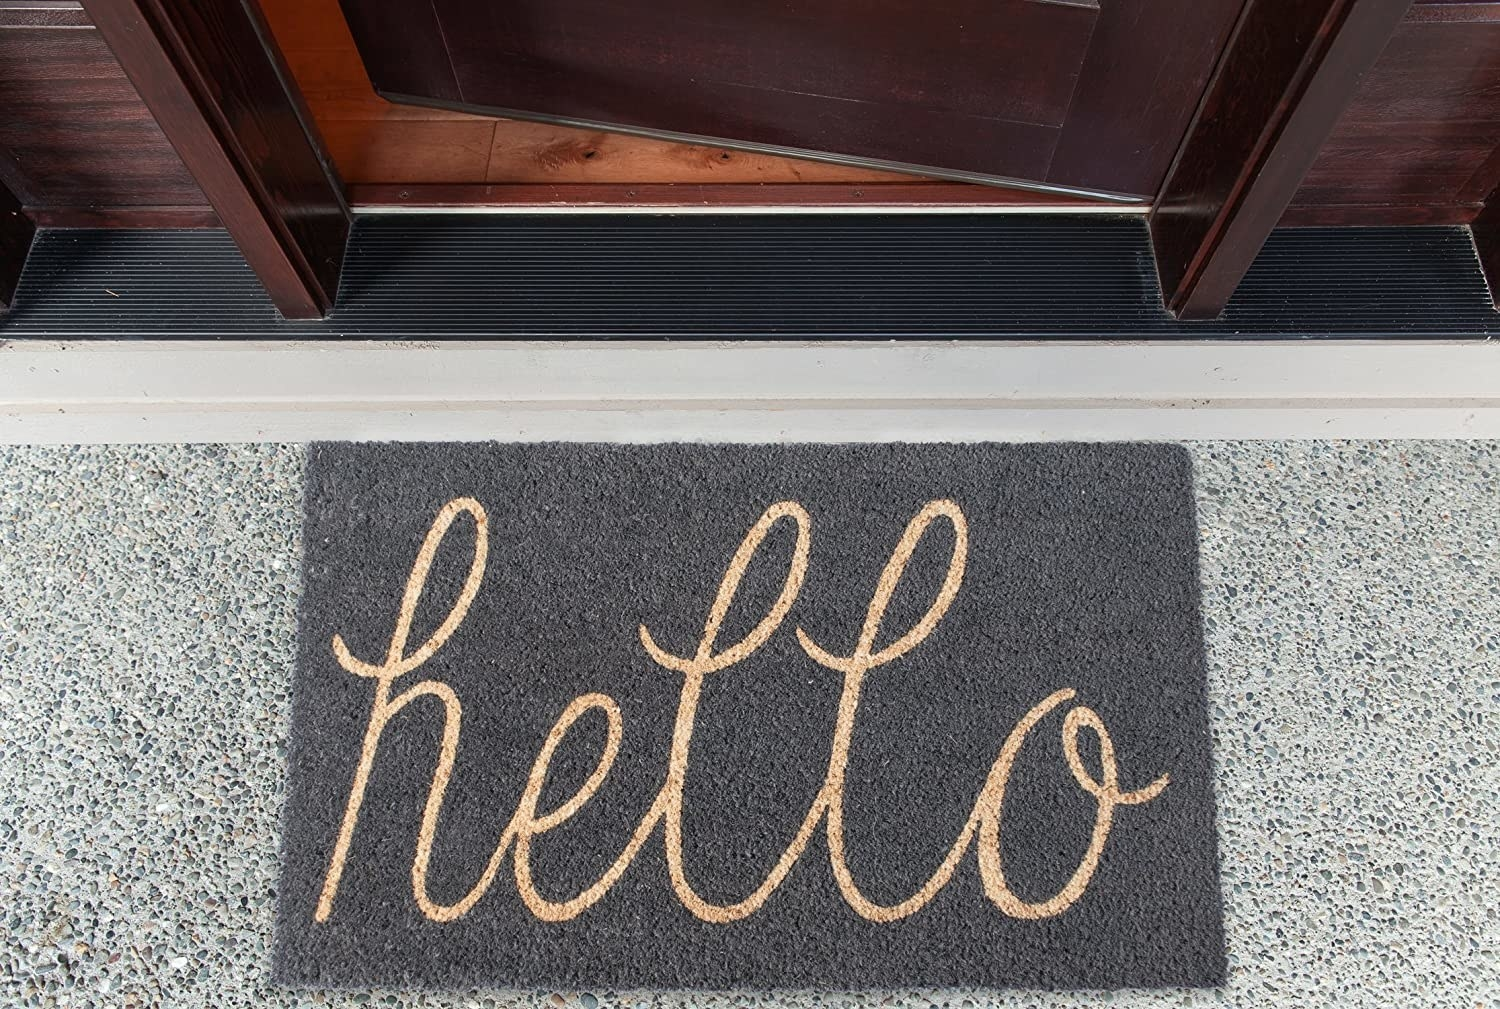 A mat that says hello is on the ground in front of a partially opened door